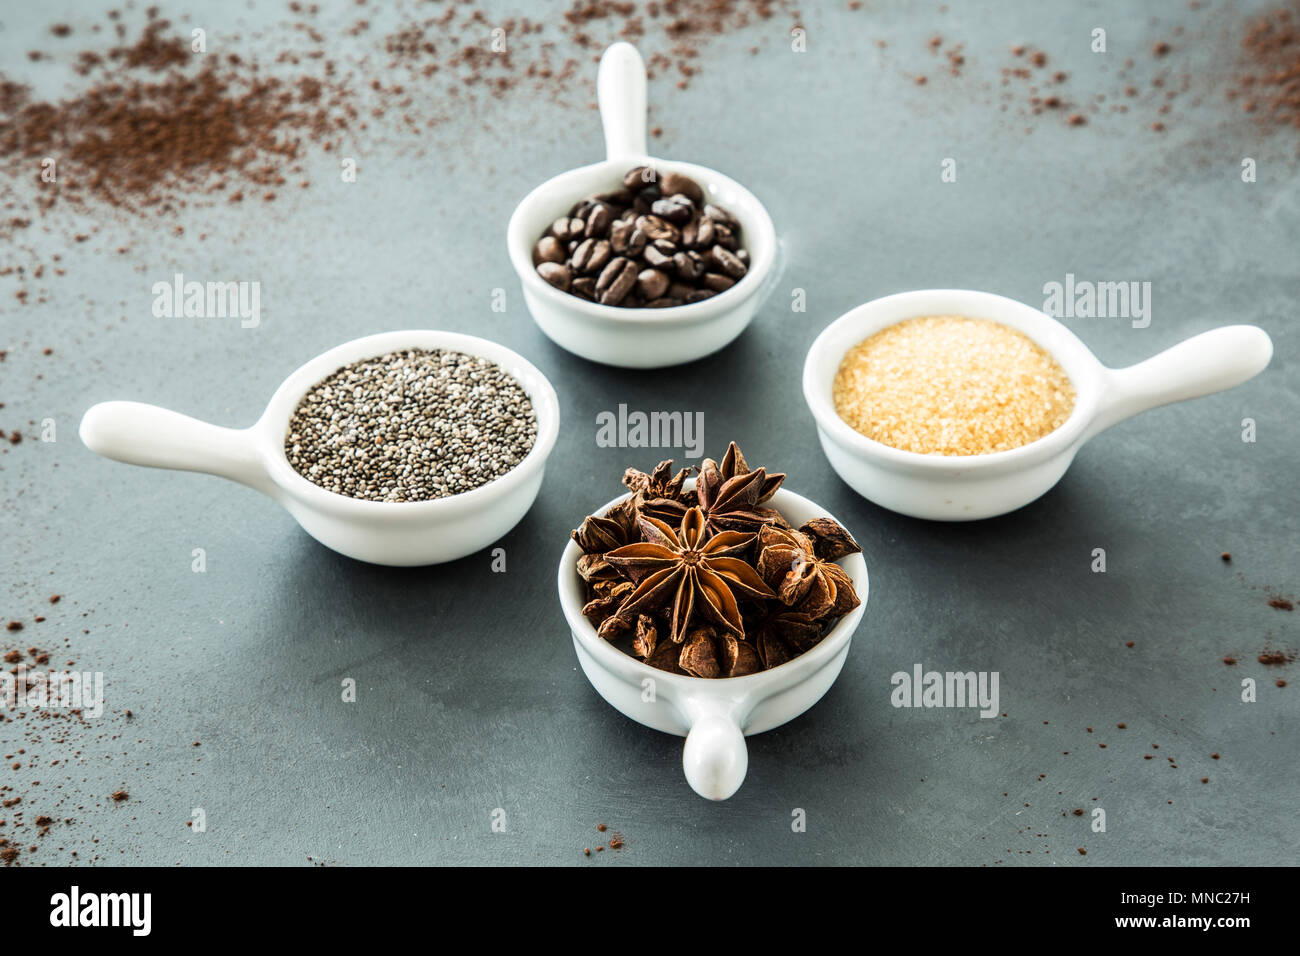 Coffee beans, seeds and star anise in small, matching bowls on a gray table. Concept of flavoring food - Stock Image